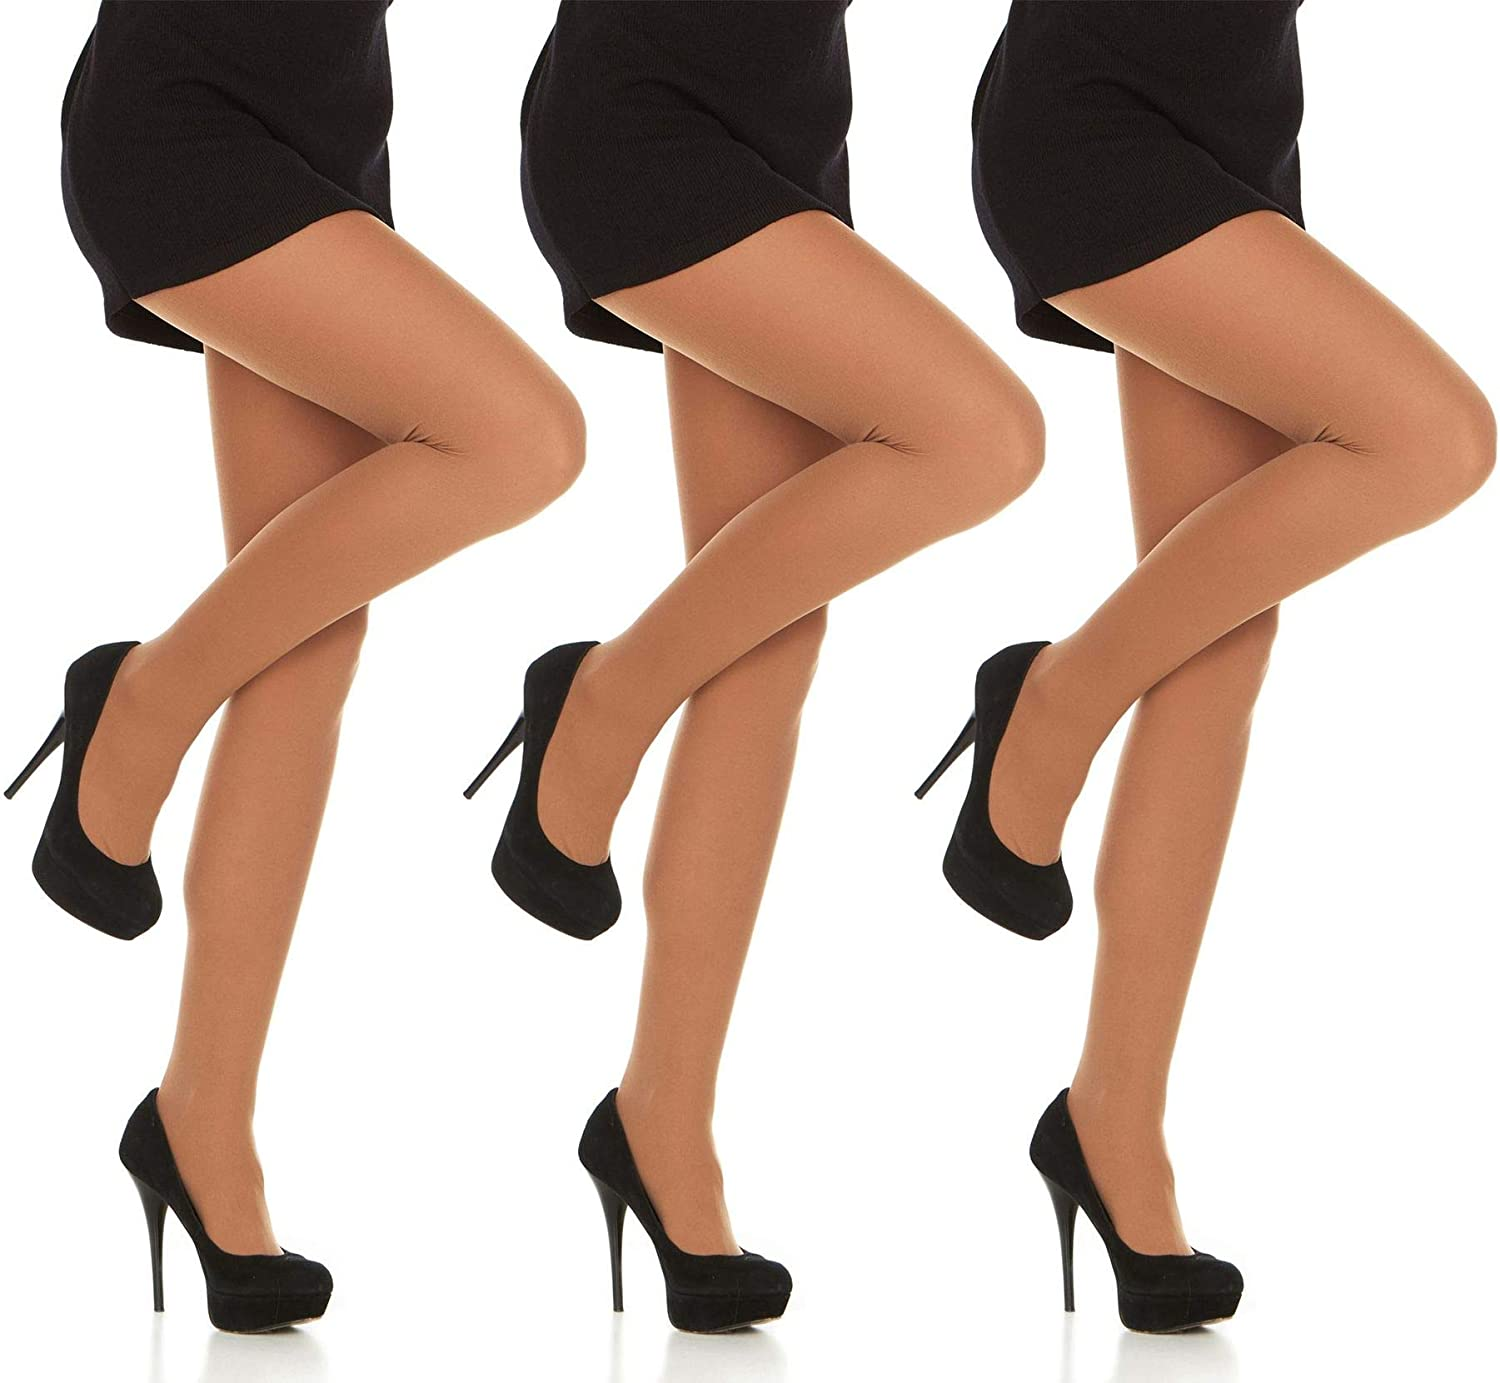 Daresay Opaque Microfibre Tights for Women - Ladies Stretch Pantyhose 70Den - Standard and Queen size - 3 Pack